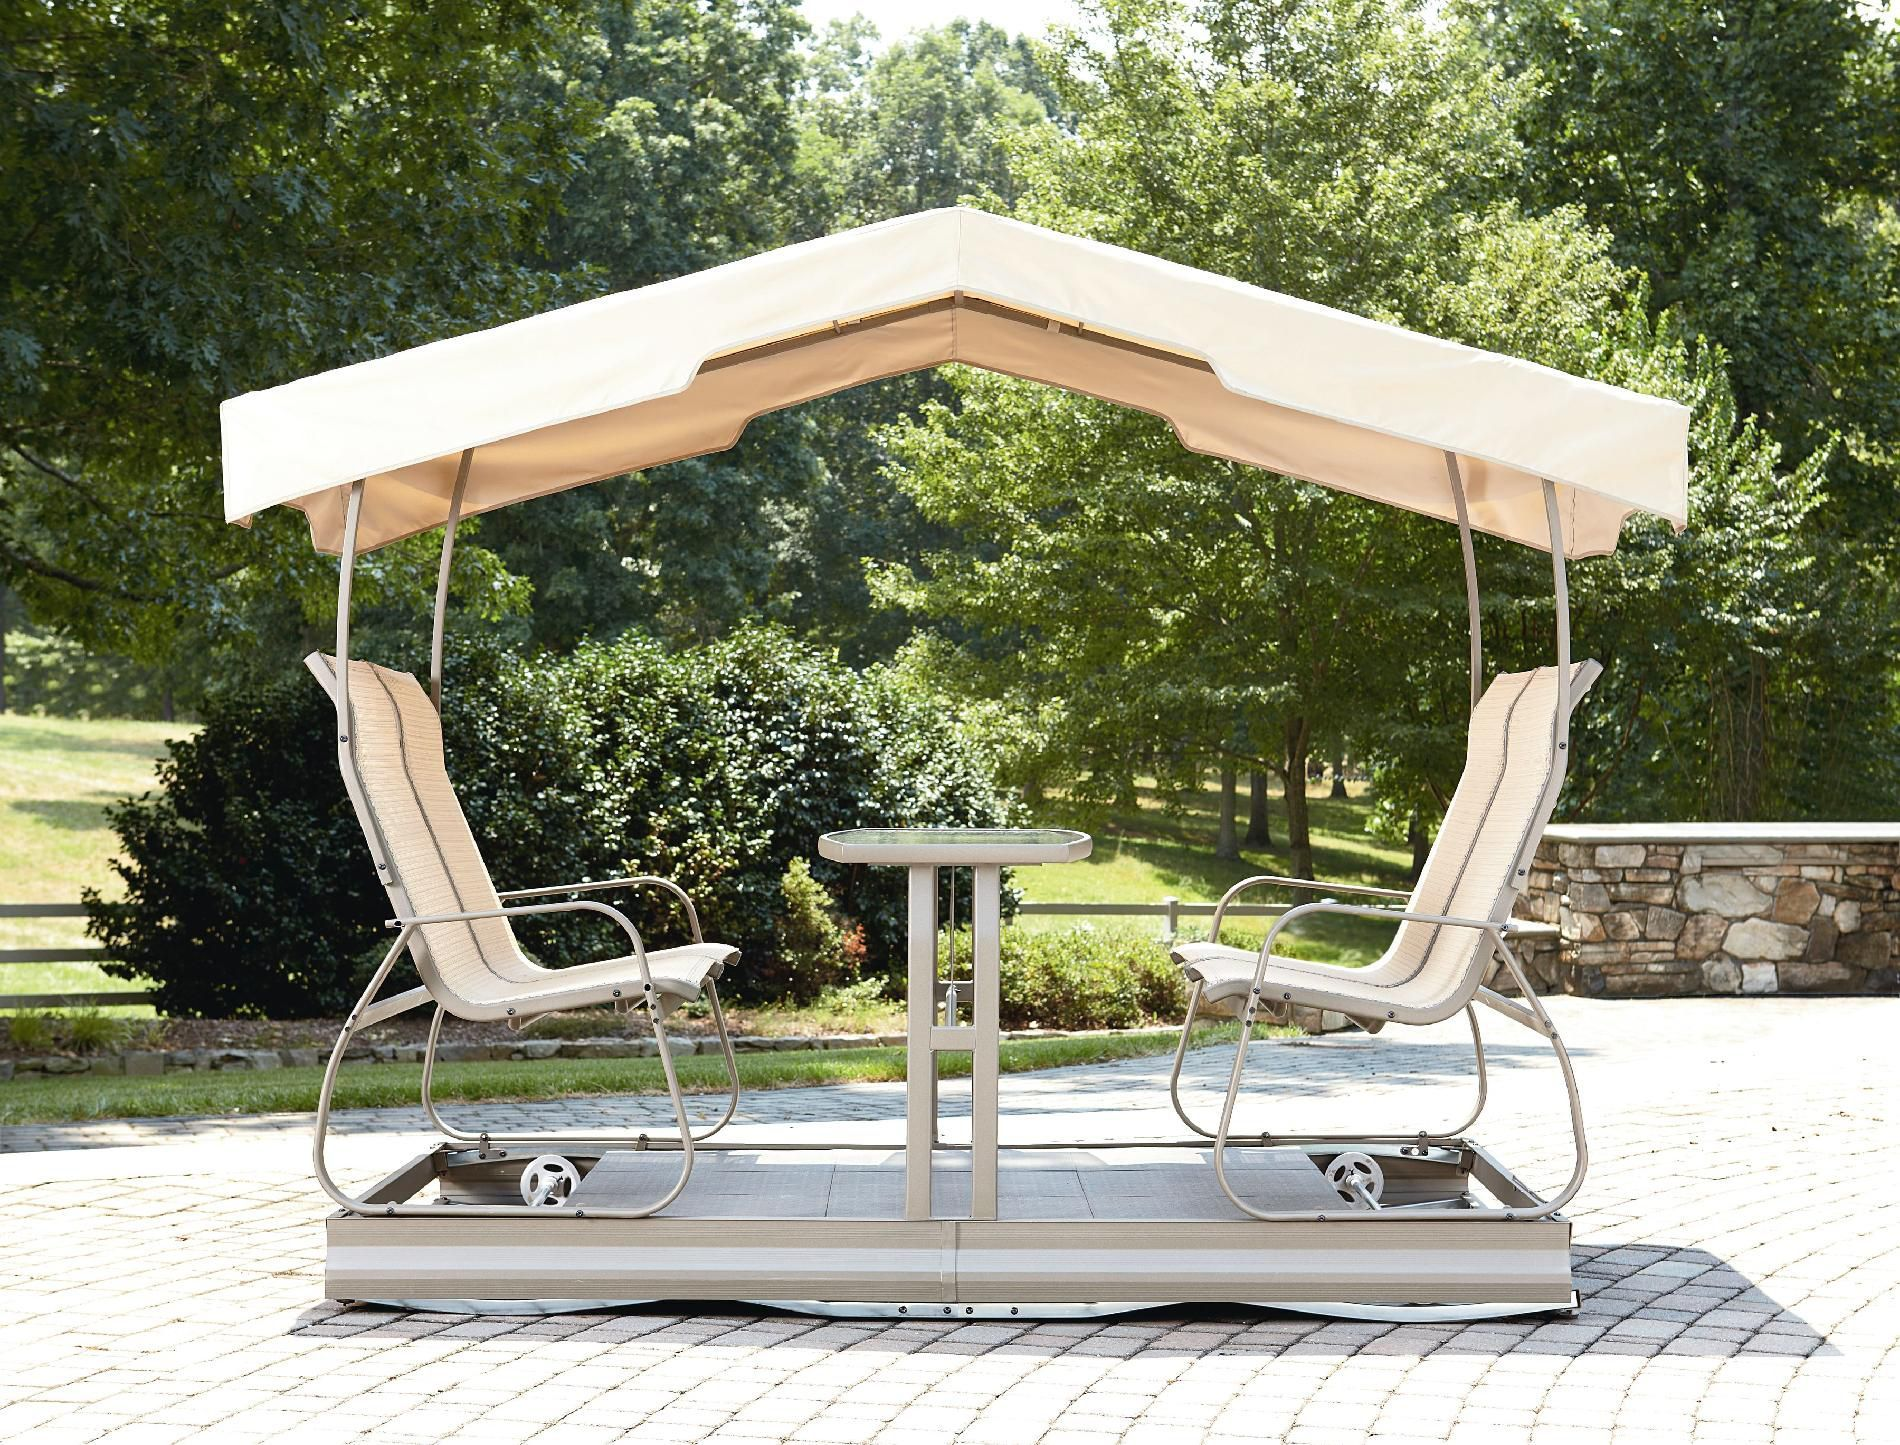 Garden Glider Plans | Grandview 4 Seat Glider The Grandview 4 Seat Glider  Is The Perfect